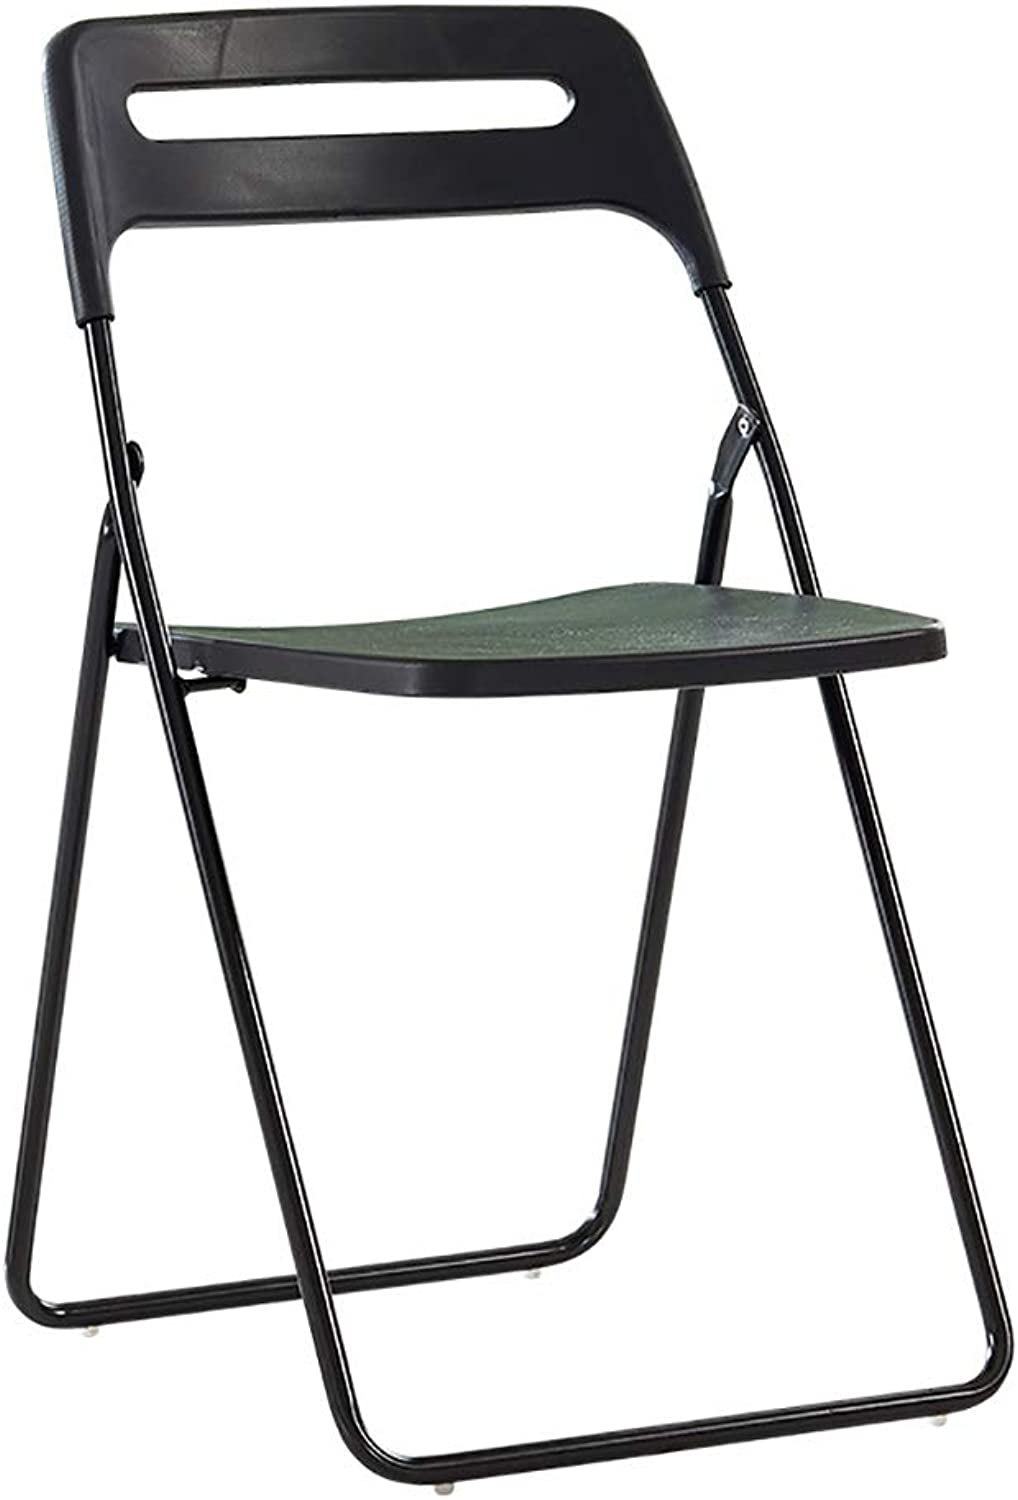 Modern Minimalist Folding chair Desk chair Computer chair Home chair Nordic Adult Dining chair Cafe Table and chair (Multi-color Size  38.5  41  78cm). (color   Black)